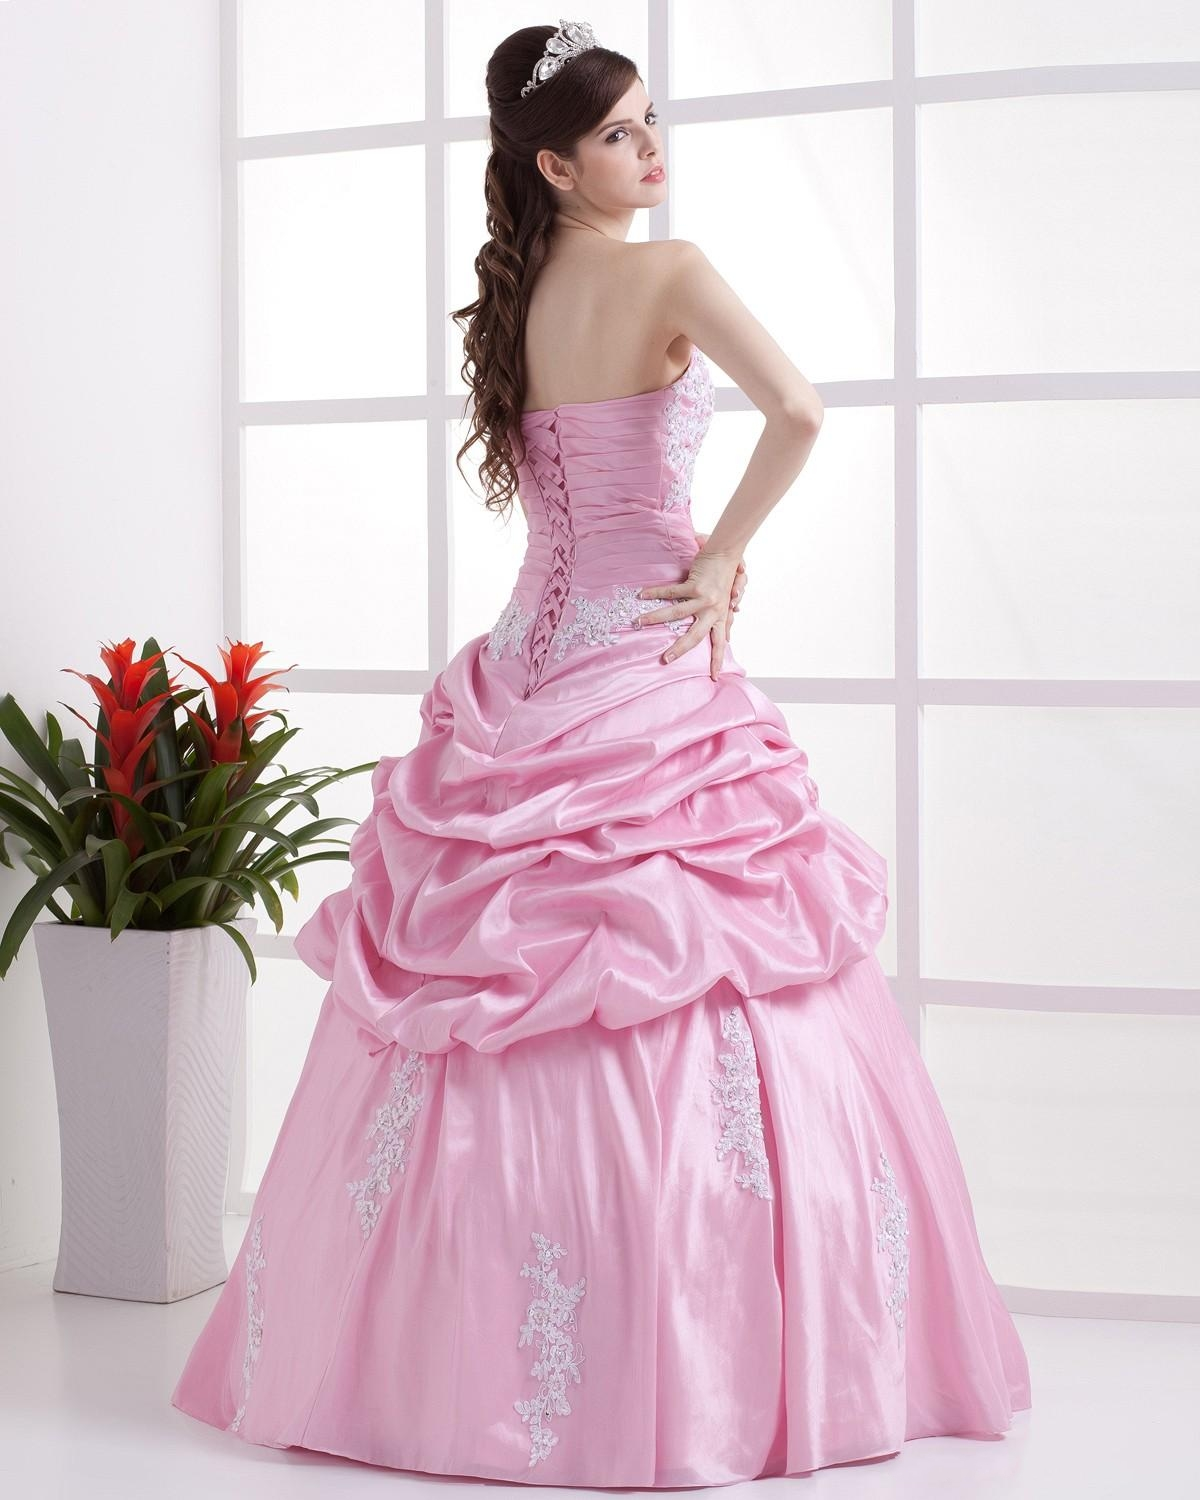 Pinky Pearl: Elegant Pink Ball Gowns - photo#26